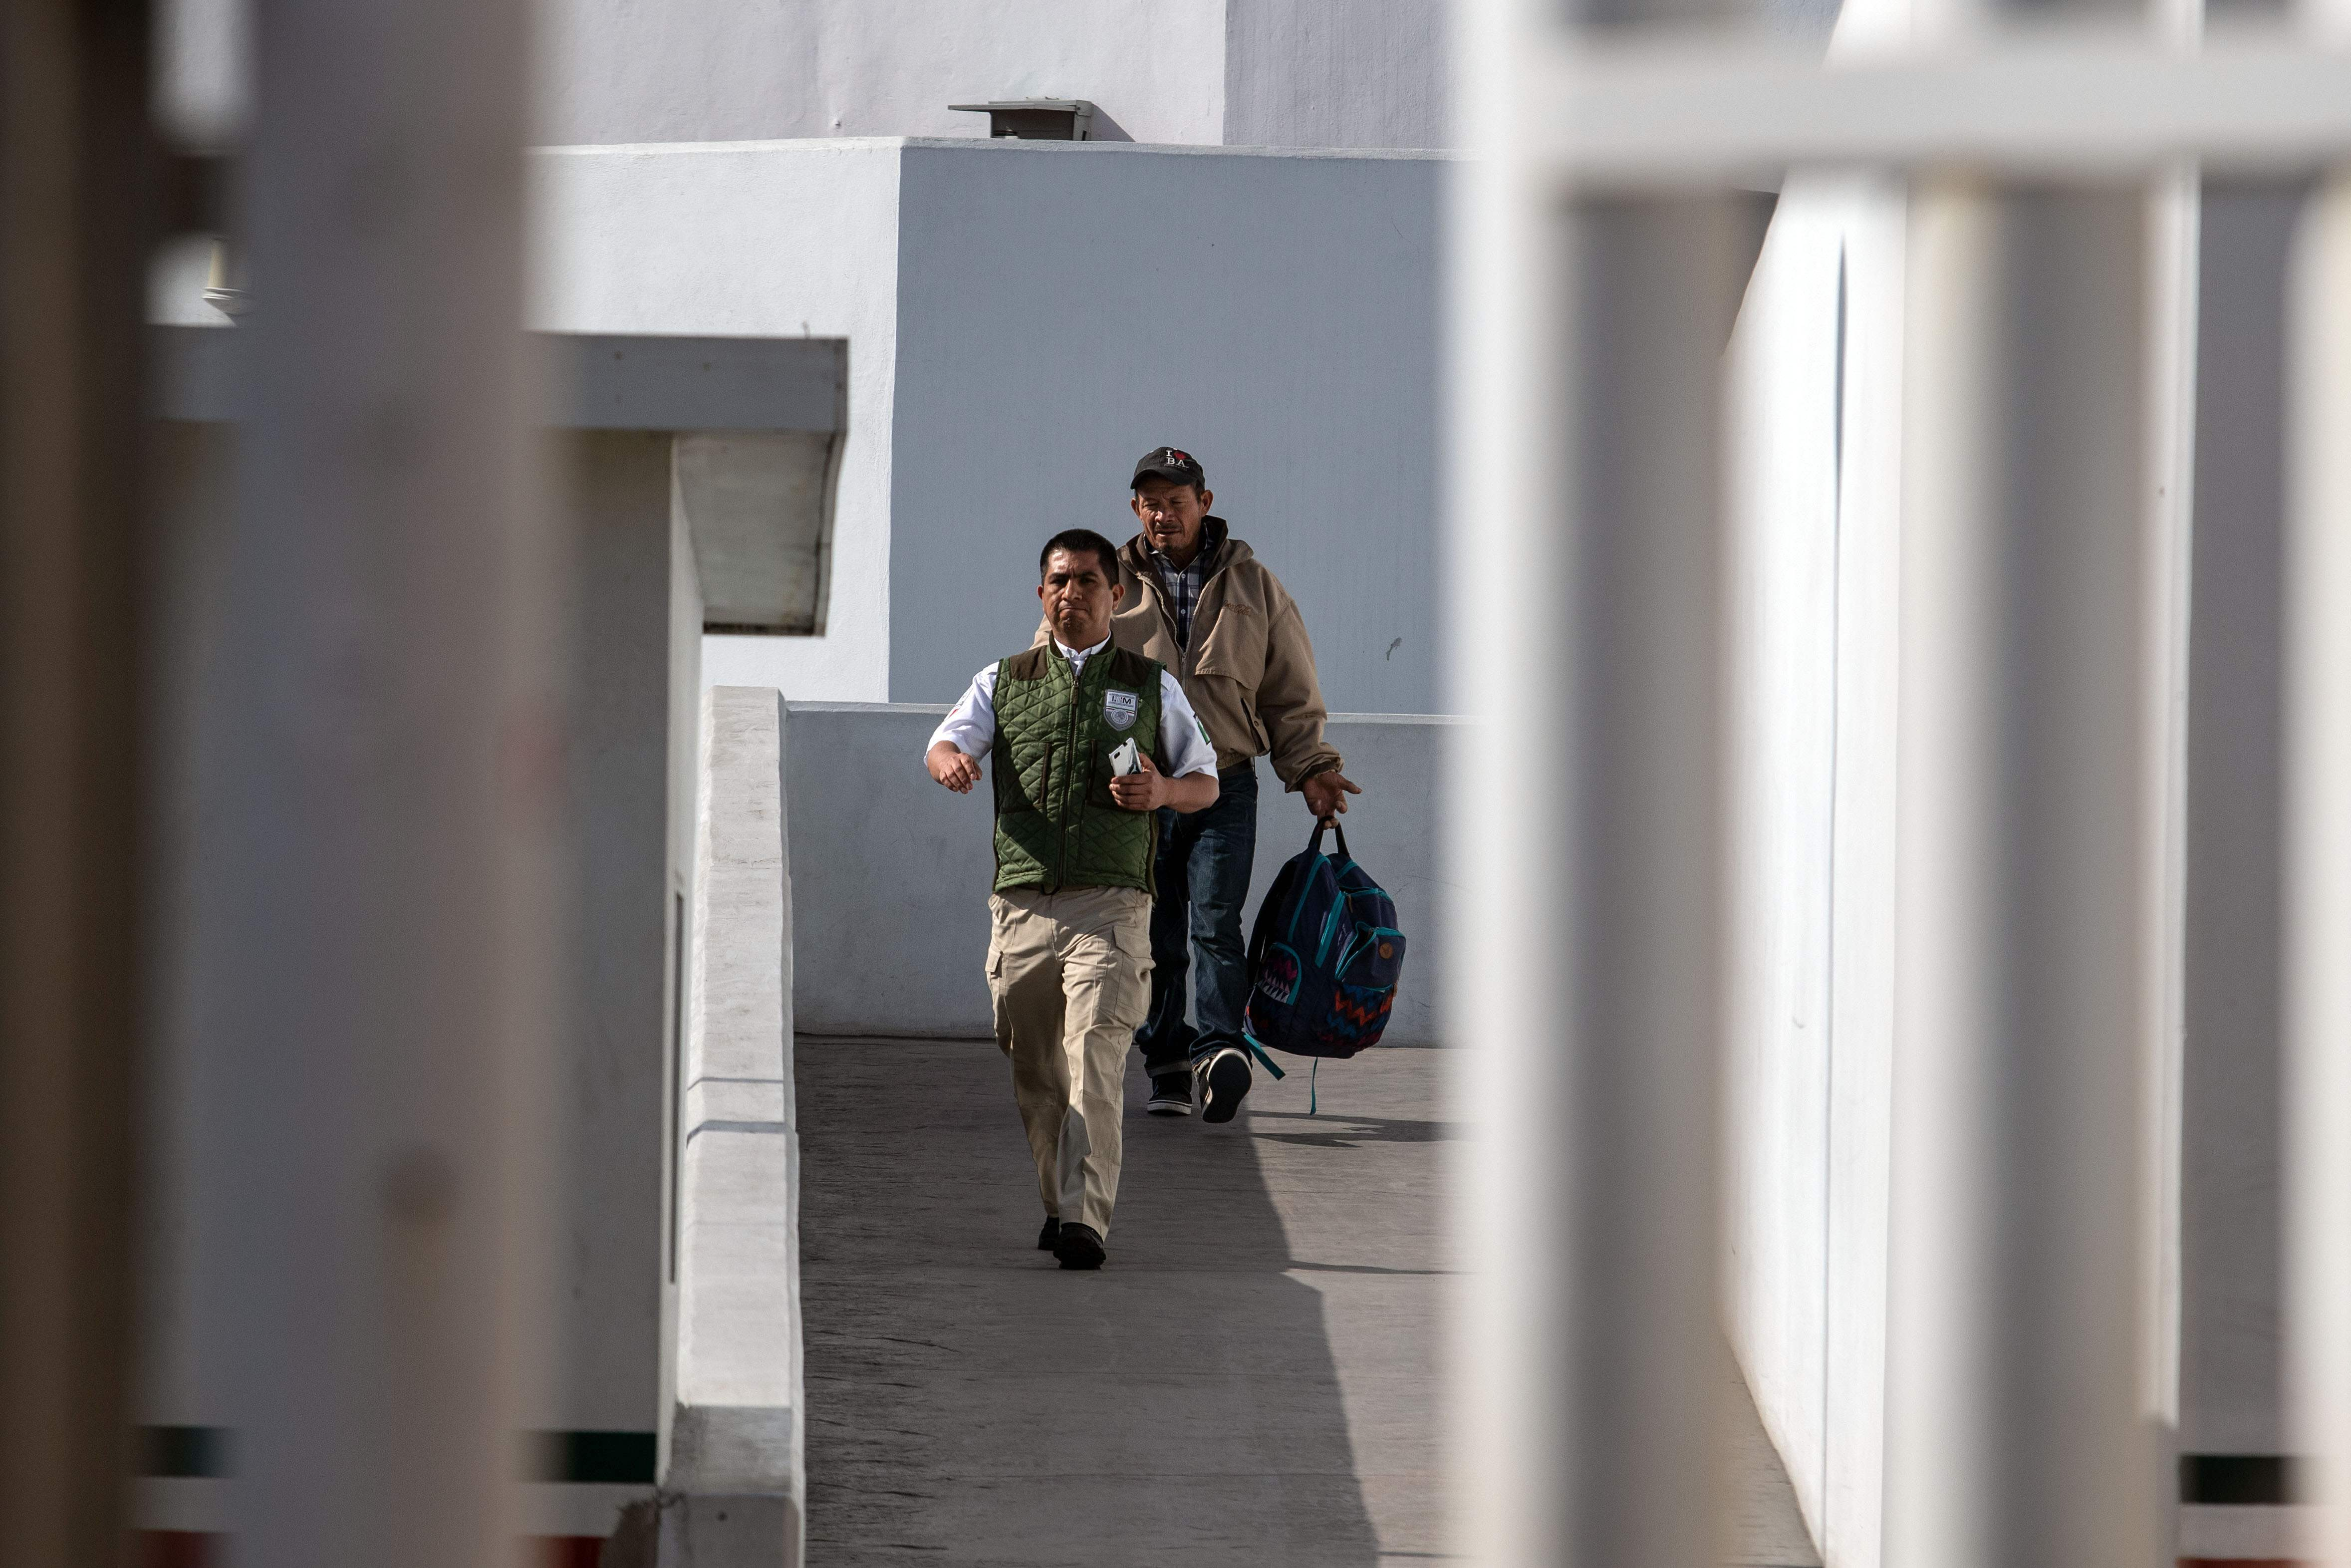 Carlos Catarlo Gomez, an asylum seeker from Honduras, returns to Mexico from the United States while his case is processed by US authorities, at El Chaparral crossing port on the US-Mexico border, in Tijuana, Baja California state, Mexico, on January 29, 2019. - According to Mexico's National Migration Institute, Carlos is the first migrant returned by US authorities under the new Migration Protocol, under which the US sends asylum seekers back to Mexico while their claims are processed. (Photo by Guillermo Arias / AFP)